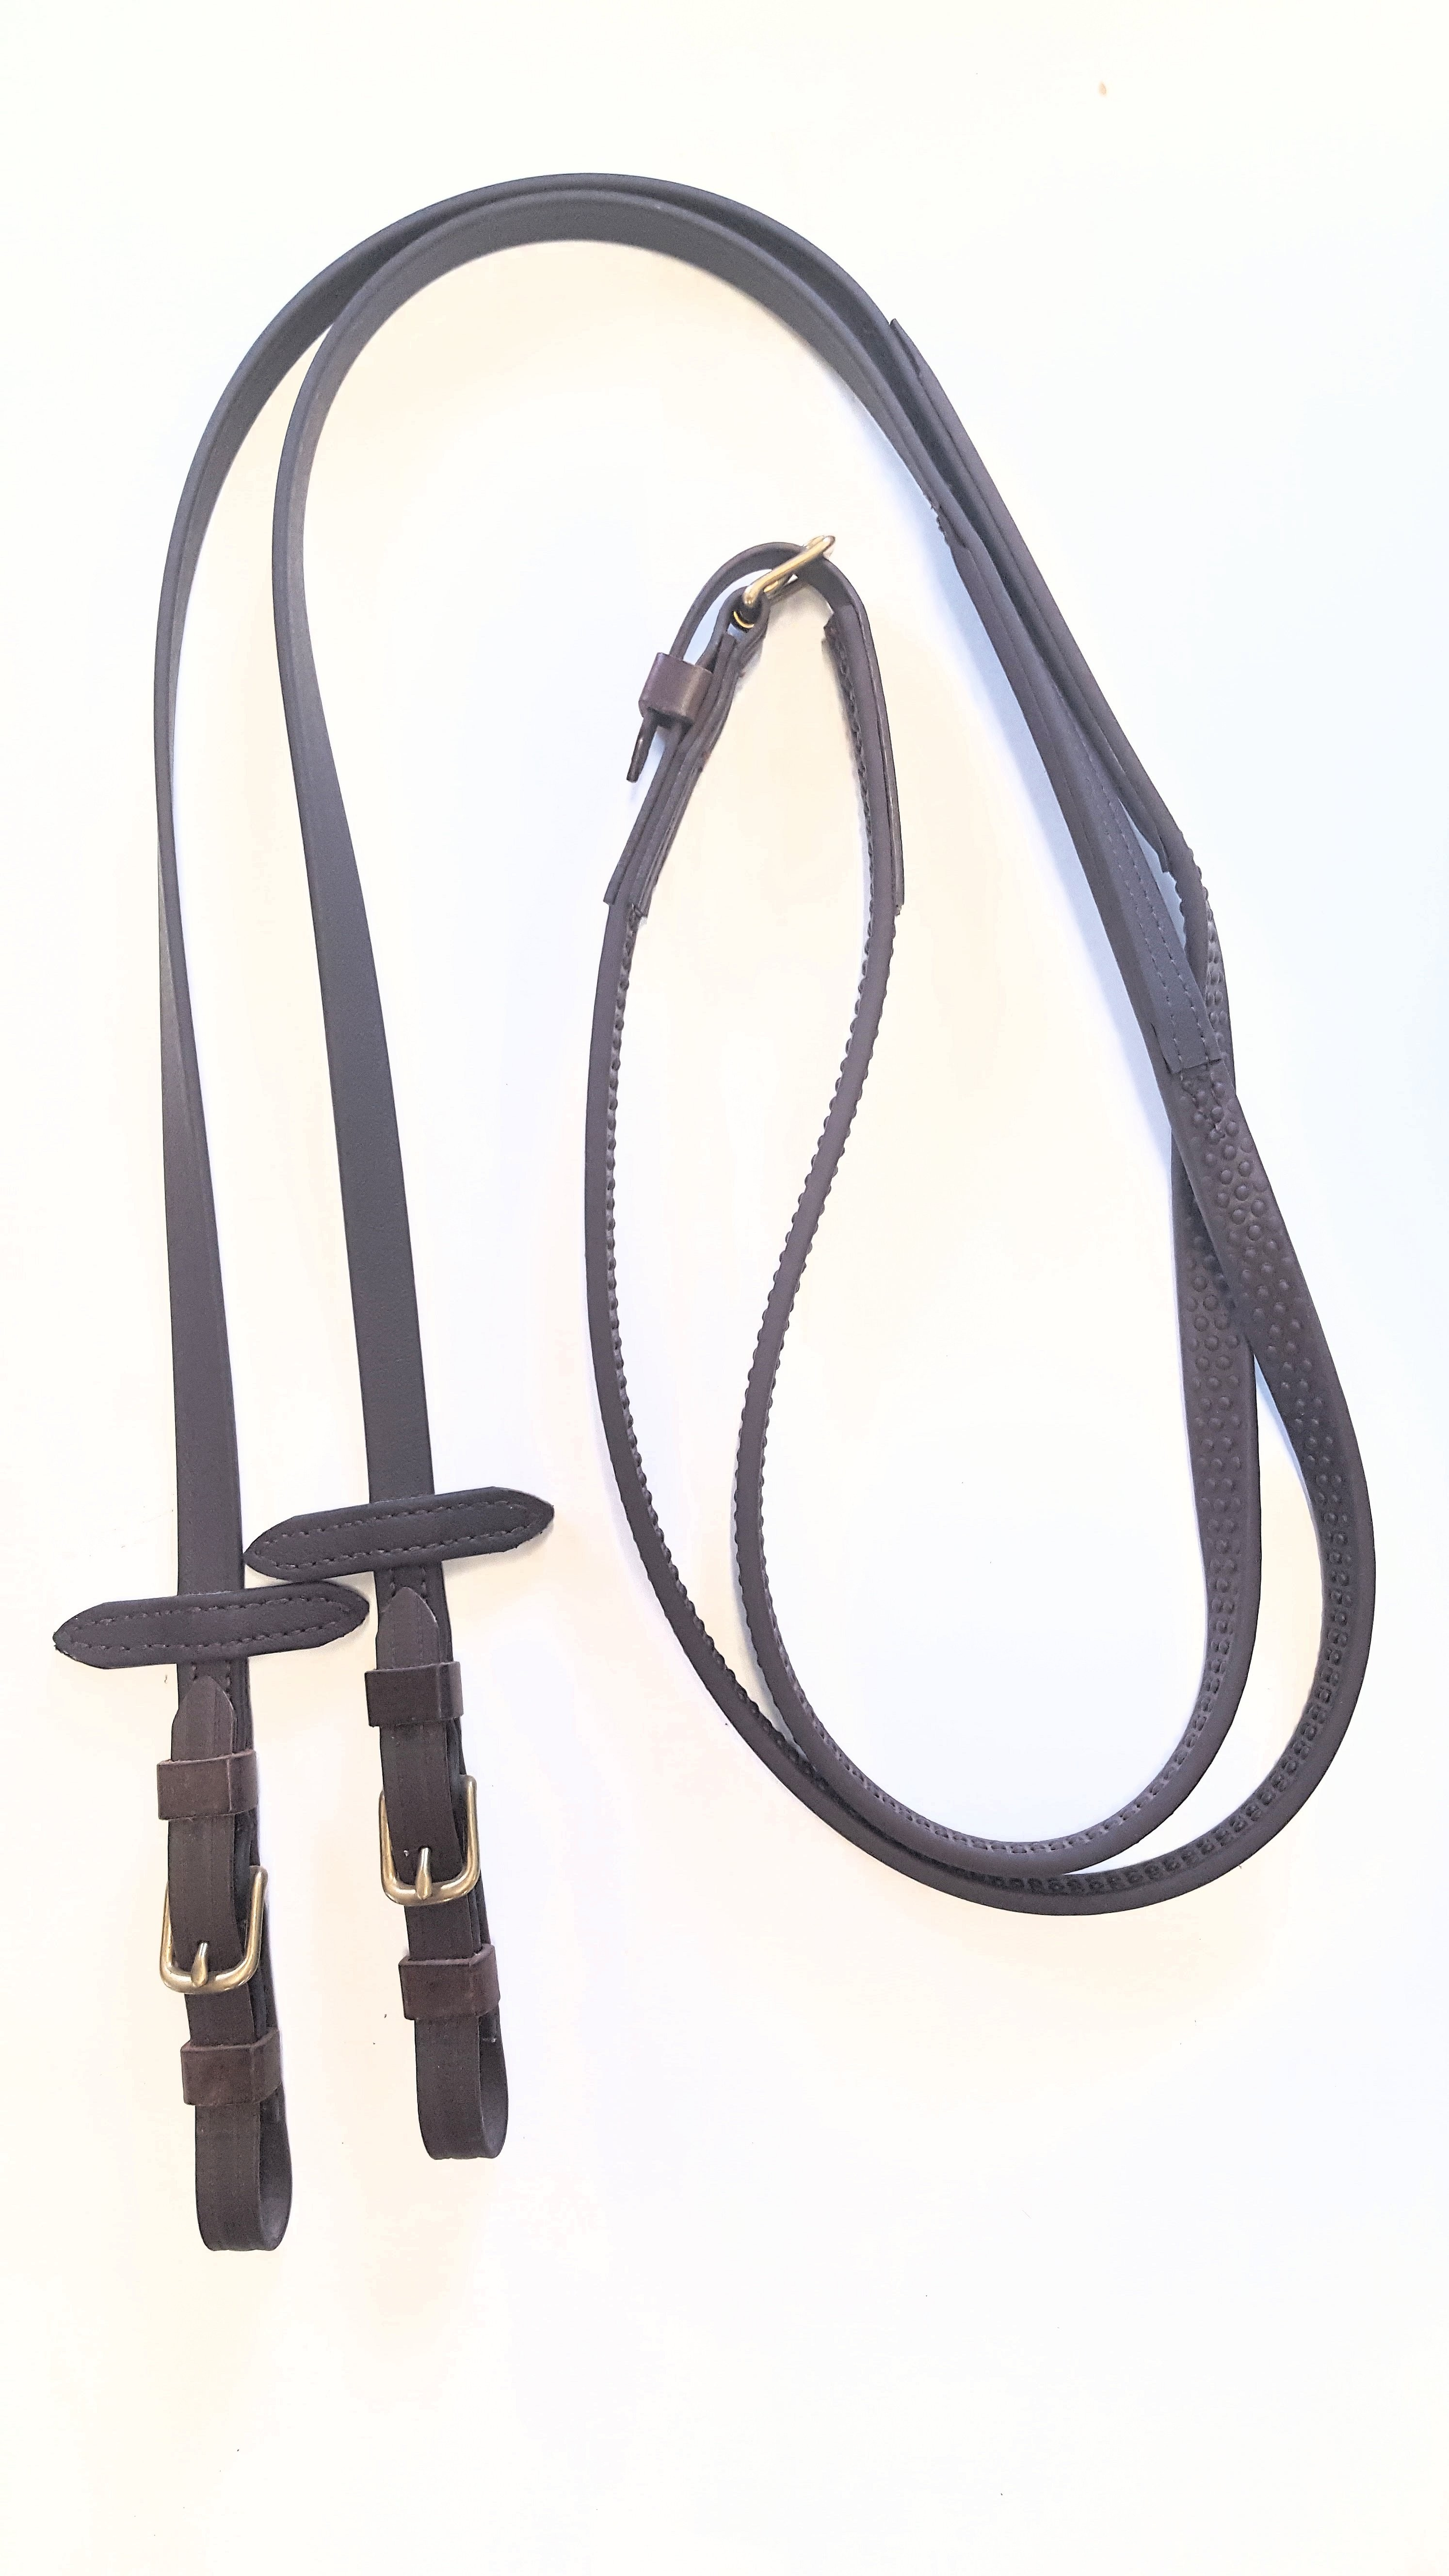 Super Grip English Reins with Martingale Stops.  Smooth at Bit end with buckles